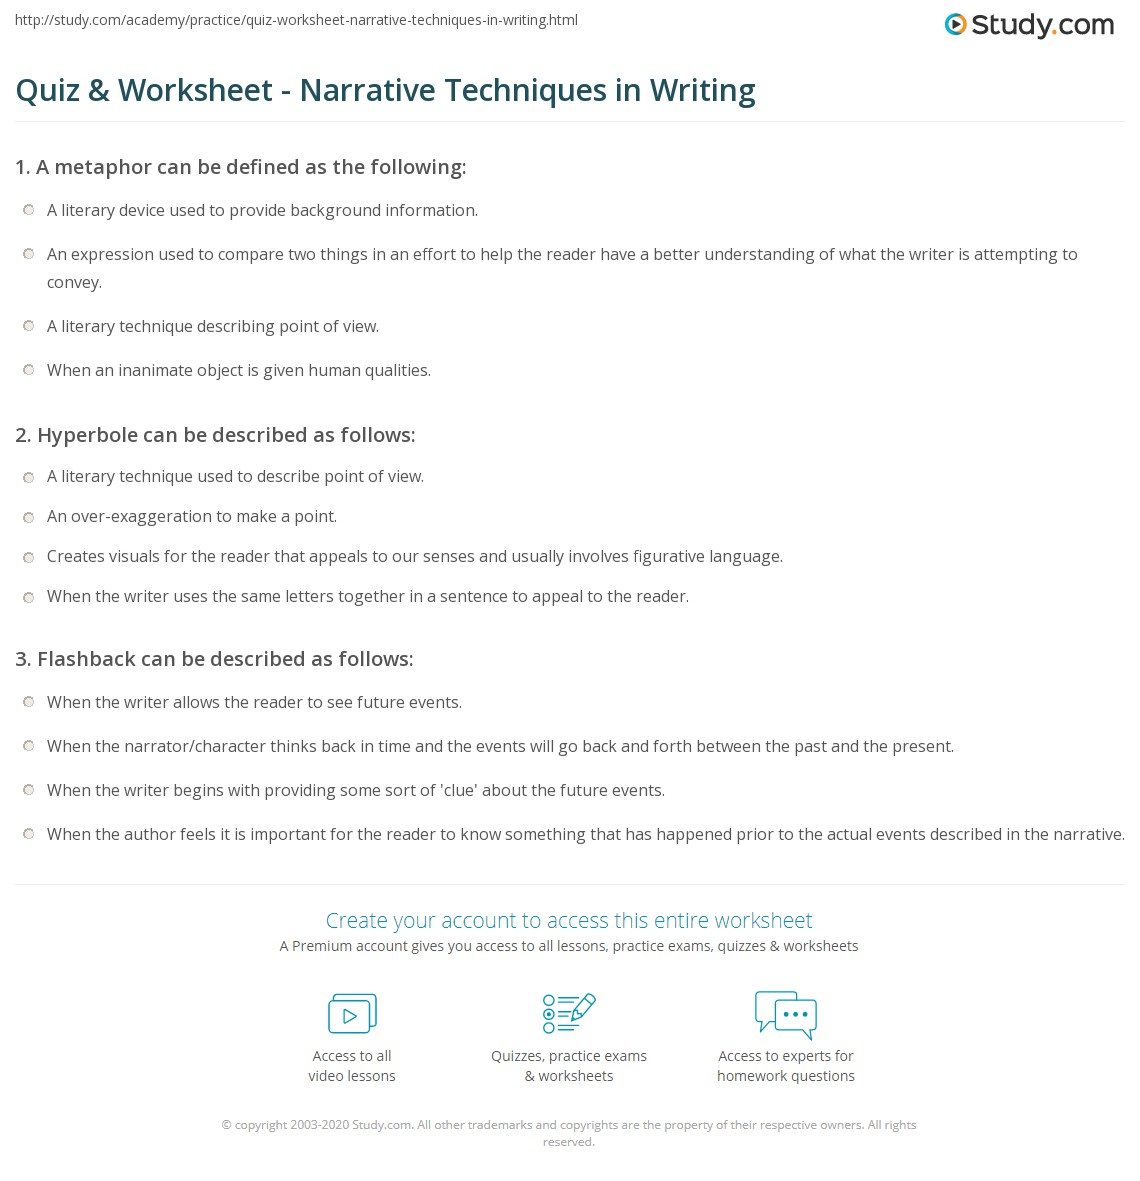 Quiz & Worksheet - Narrative Techniques In Writing | Study